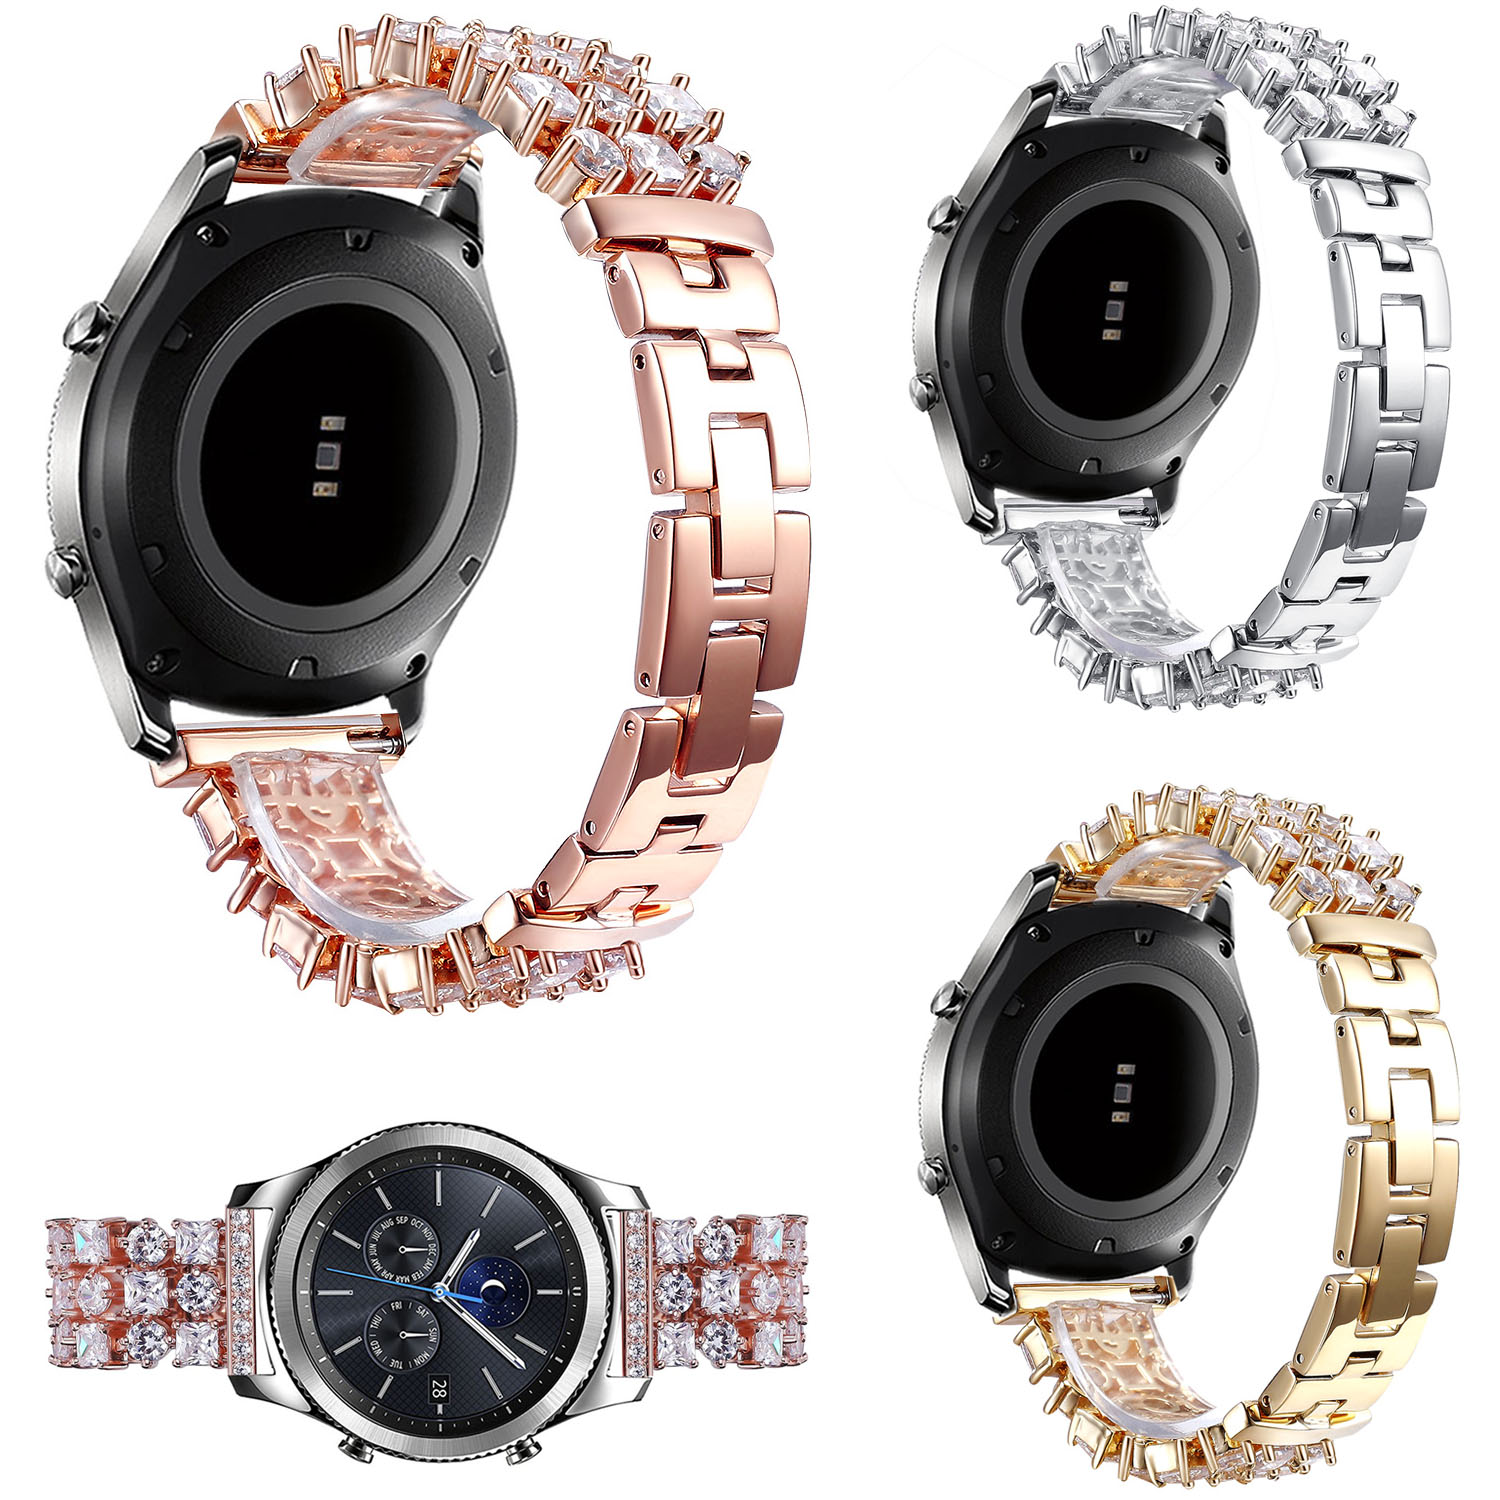 22mm Glitter Bling Rhinestones Crystal Link Band for Samsung Gear S3 Frontier / S3 Classic Watch Bracelet Stainless Steel Strap 22mm stainless steel watchband for samsung gear s3 wrist smart watch band link strap bracelet for s3 classic s3 frontier band